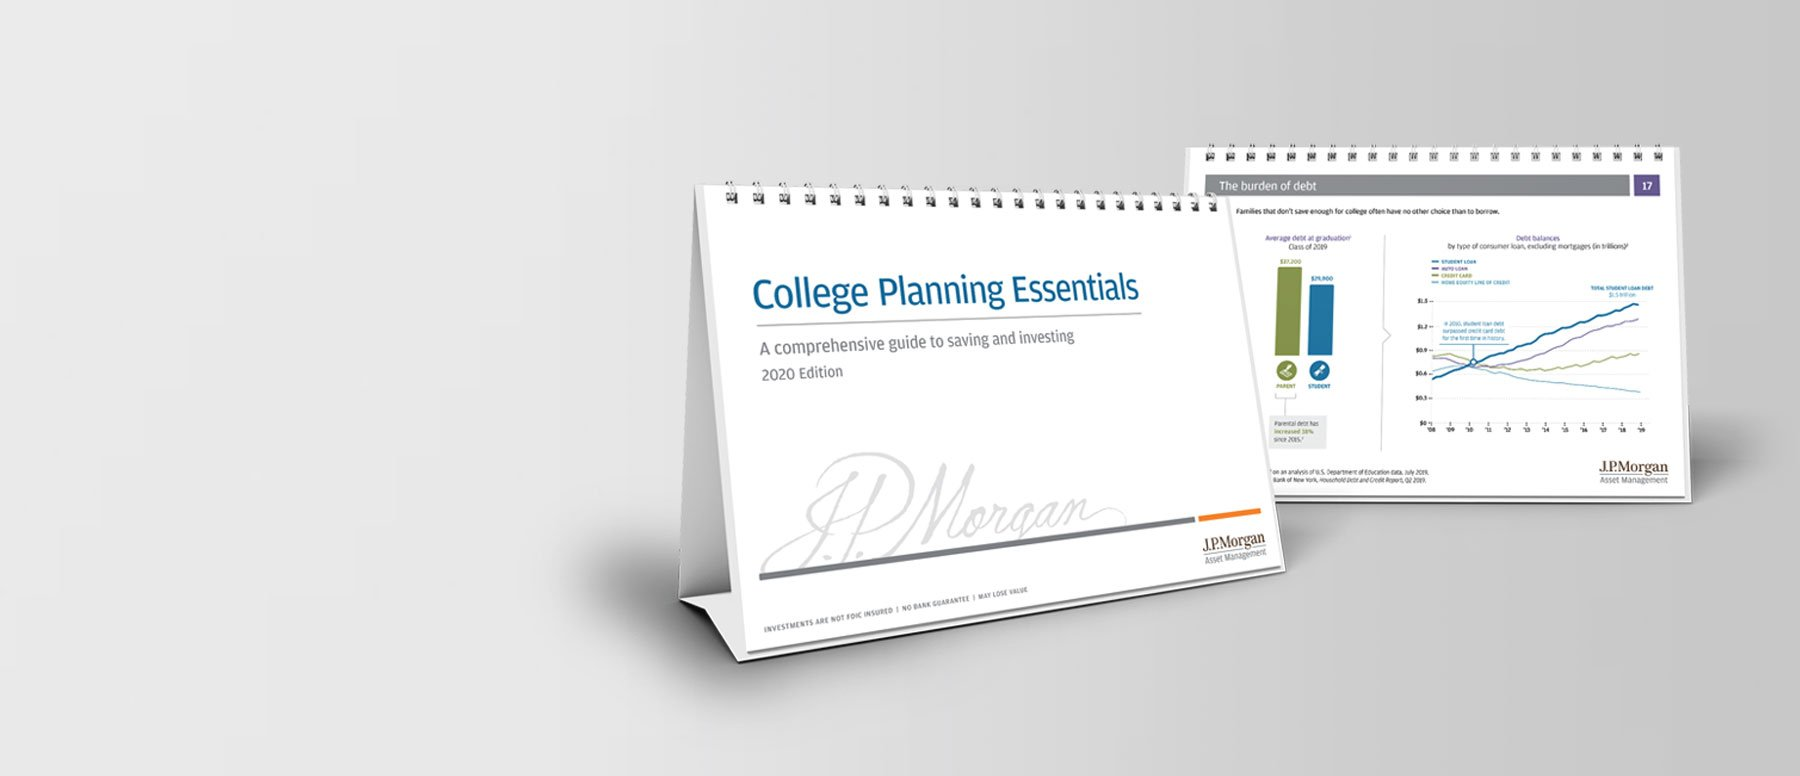 Marketing Collateral for JP Morgan Asset Management